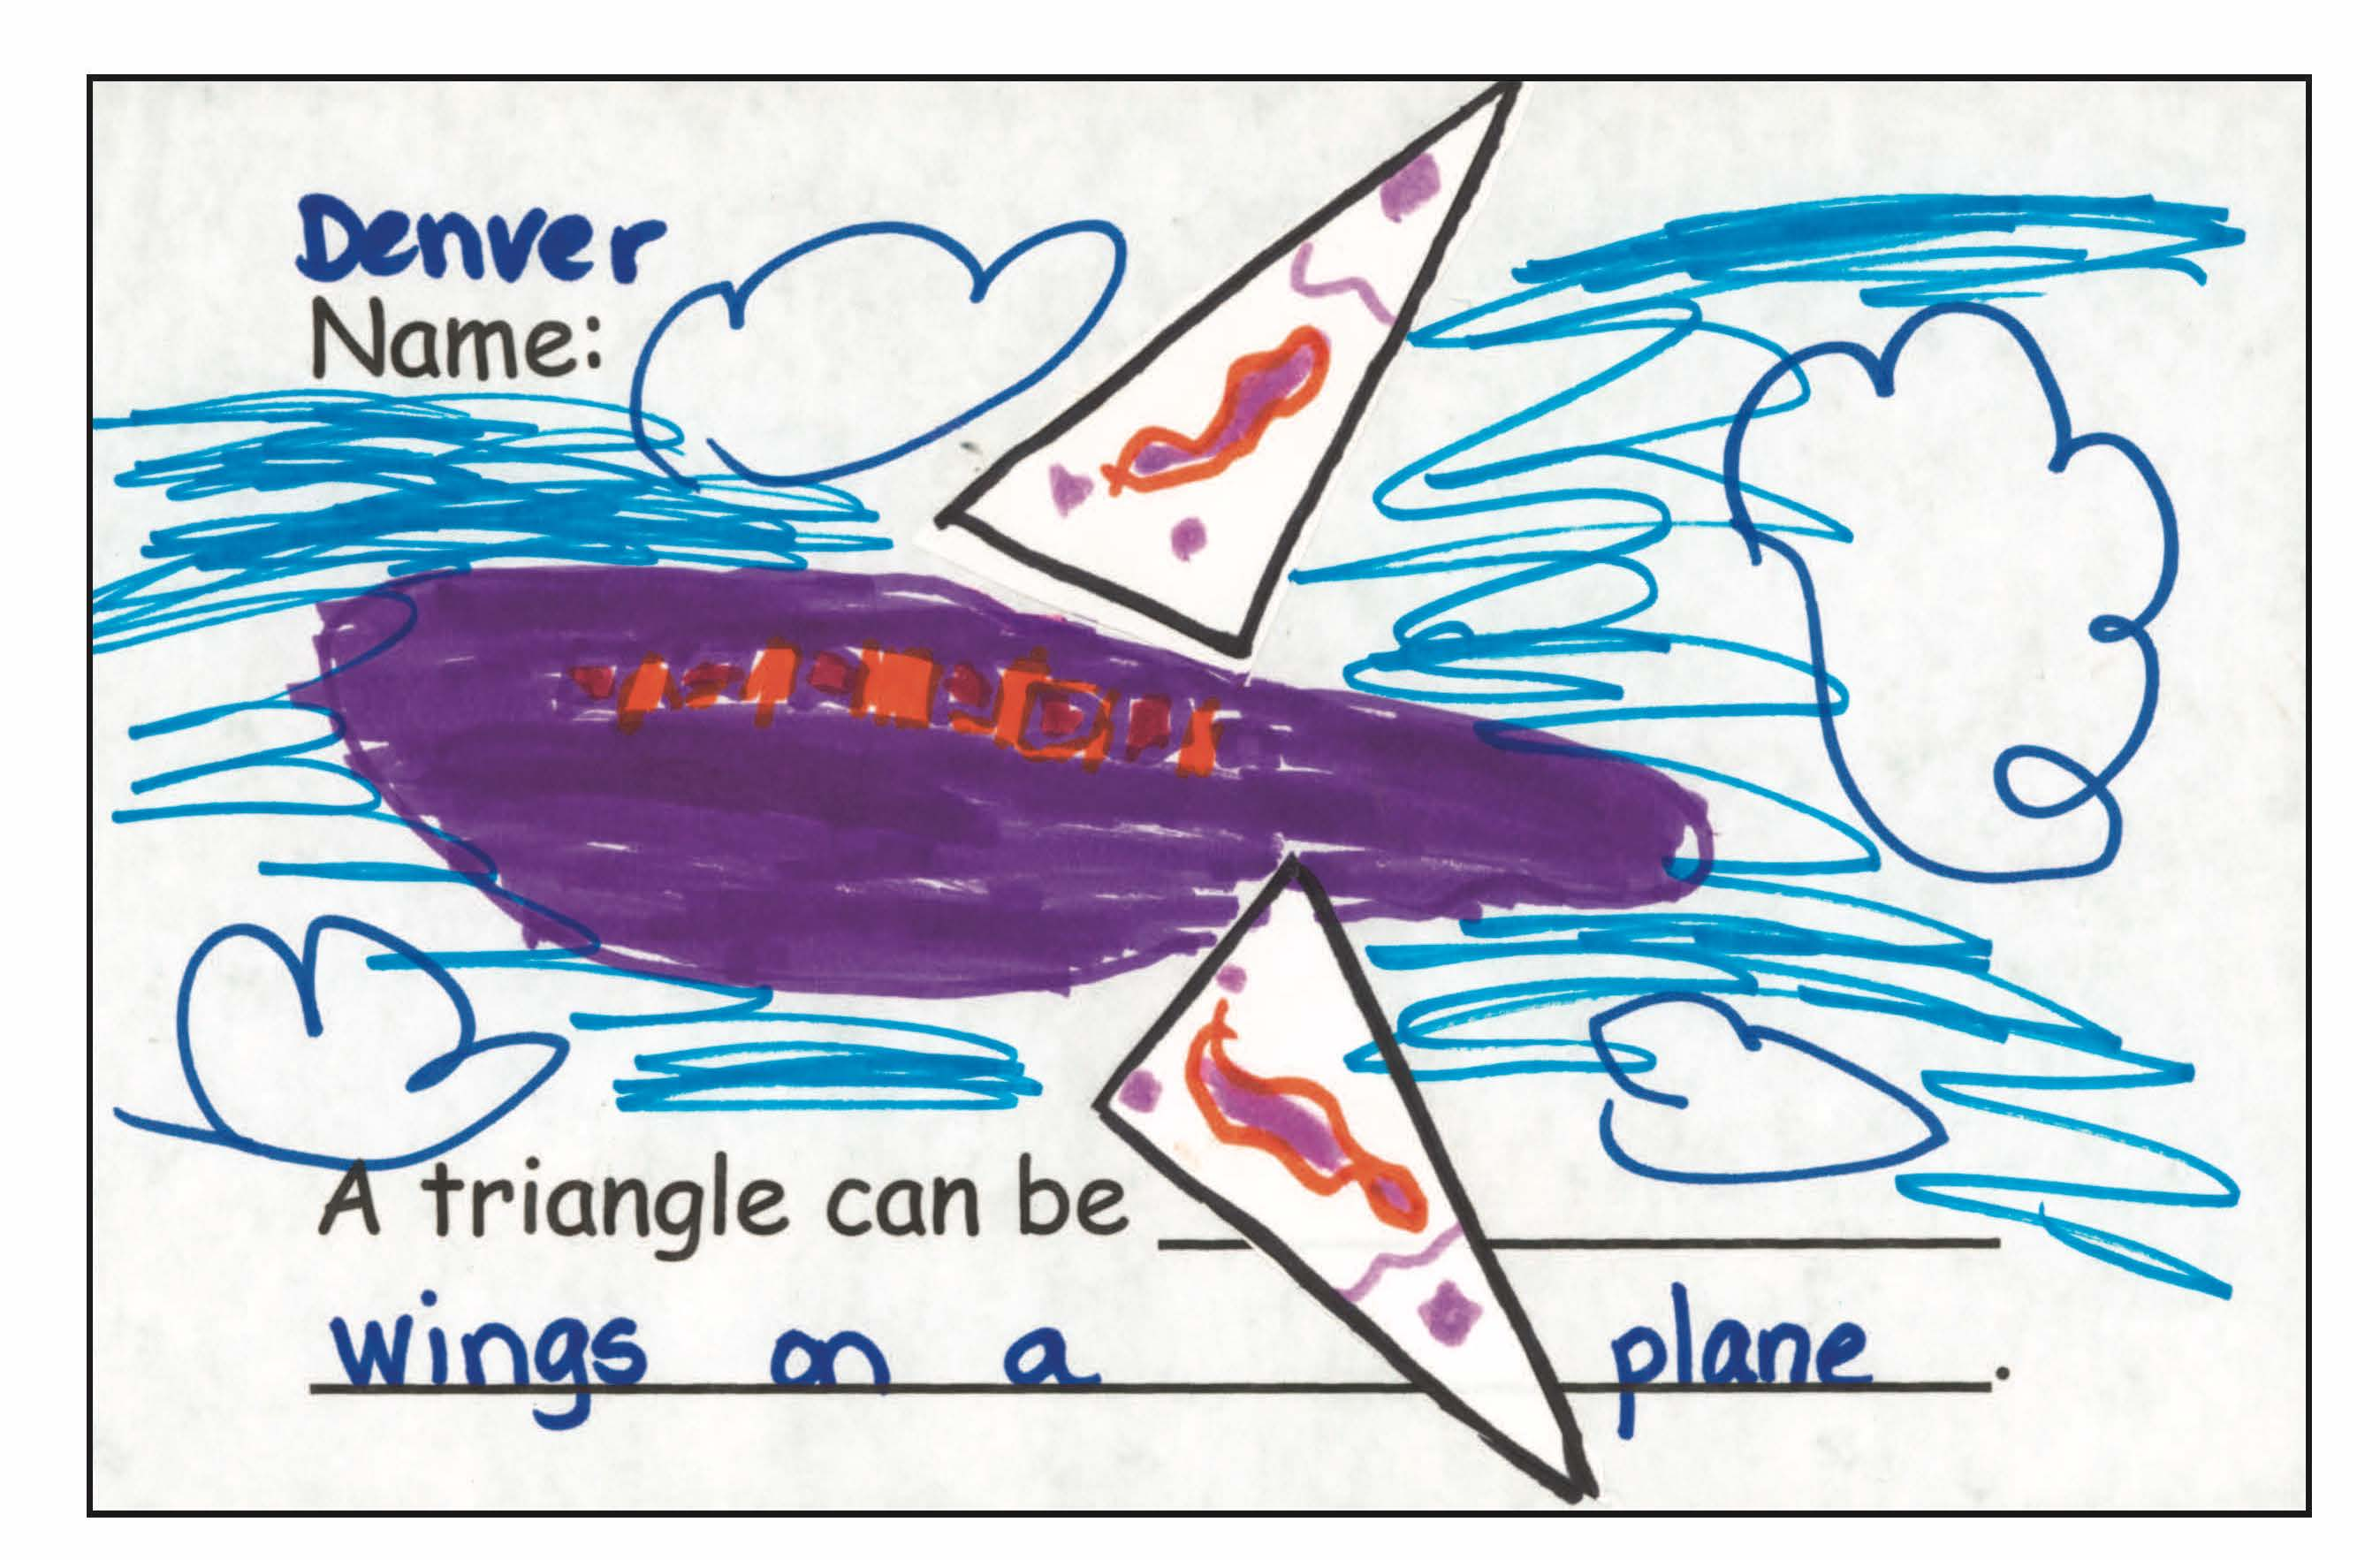 Figure 1. Denver used two triangles for the wings of an airplane.